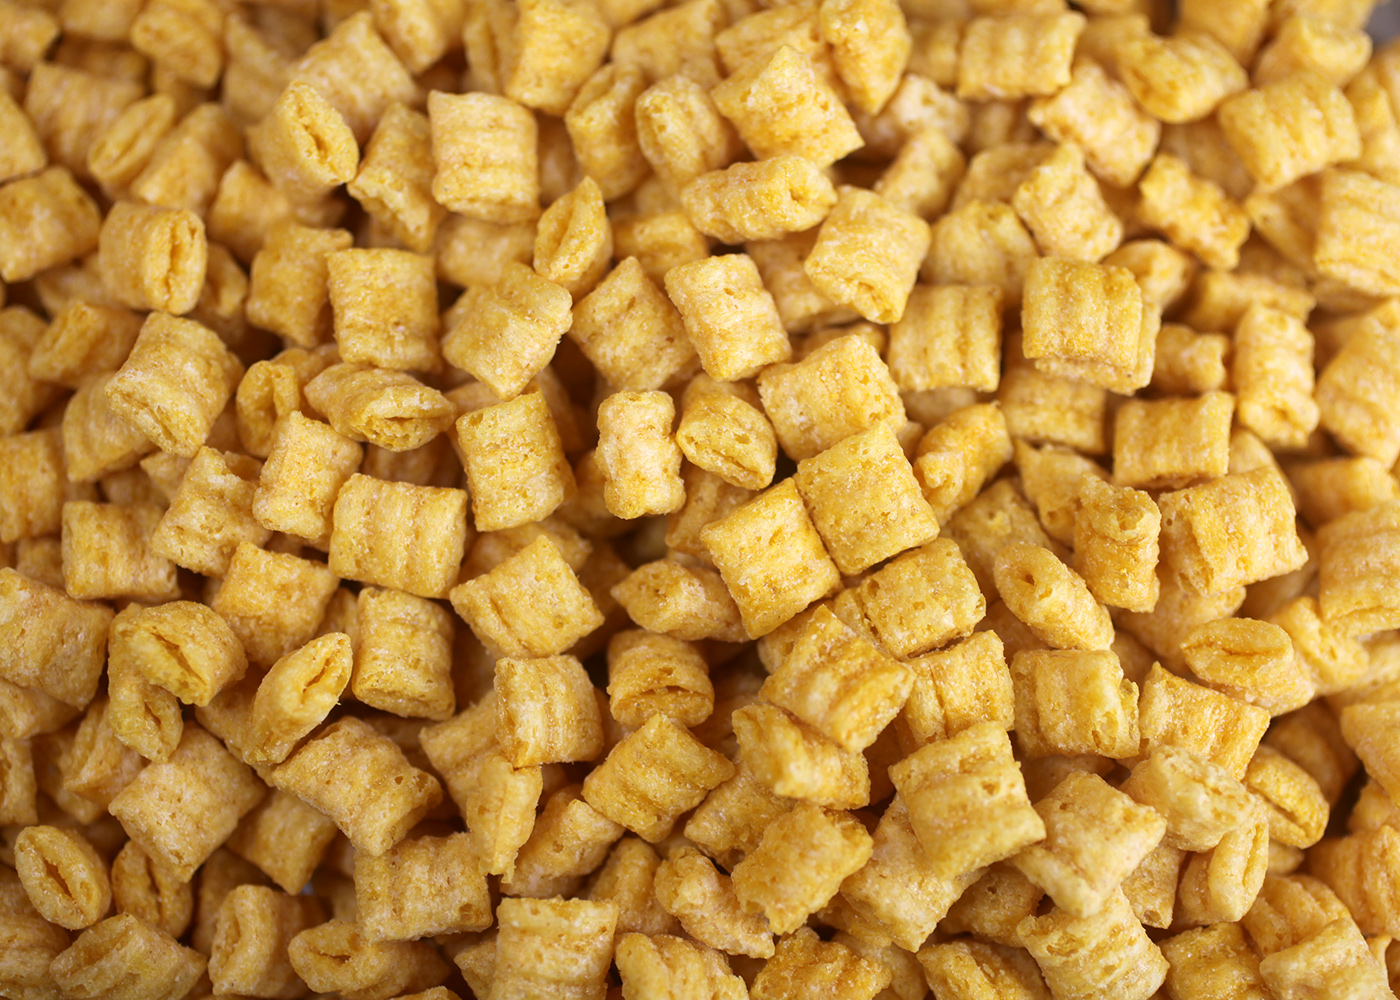 Crunchy french toast sticks bakerella crunchy thats what were going for so grab a box of capn crunch cereal crumble it up and use it to help coat these french toast sticks solutioingenieria Choice Image